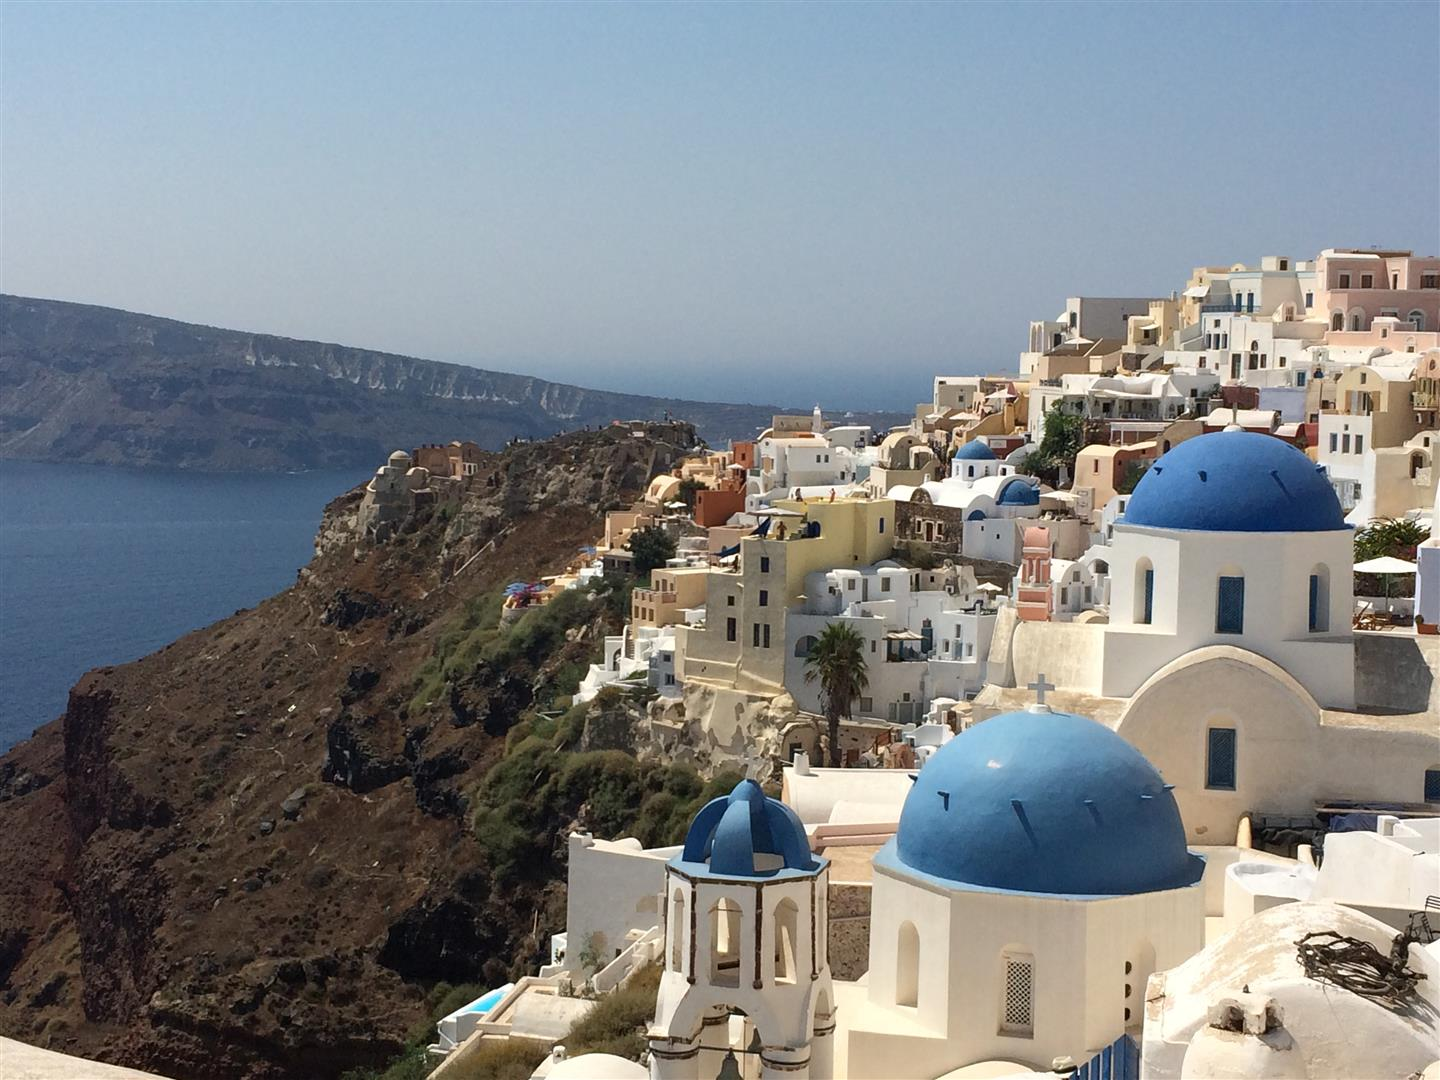 Santorini you gorgeous thing you!